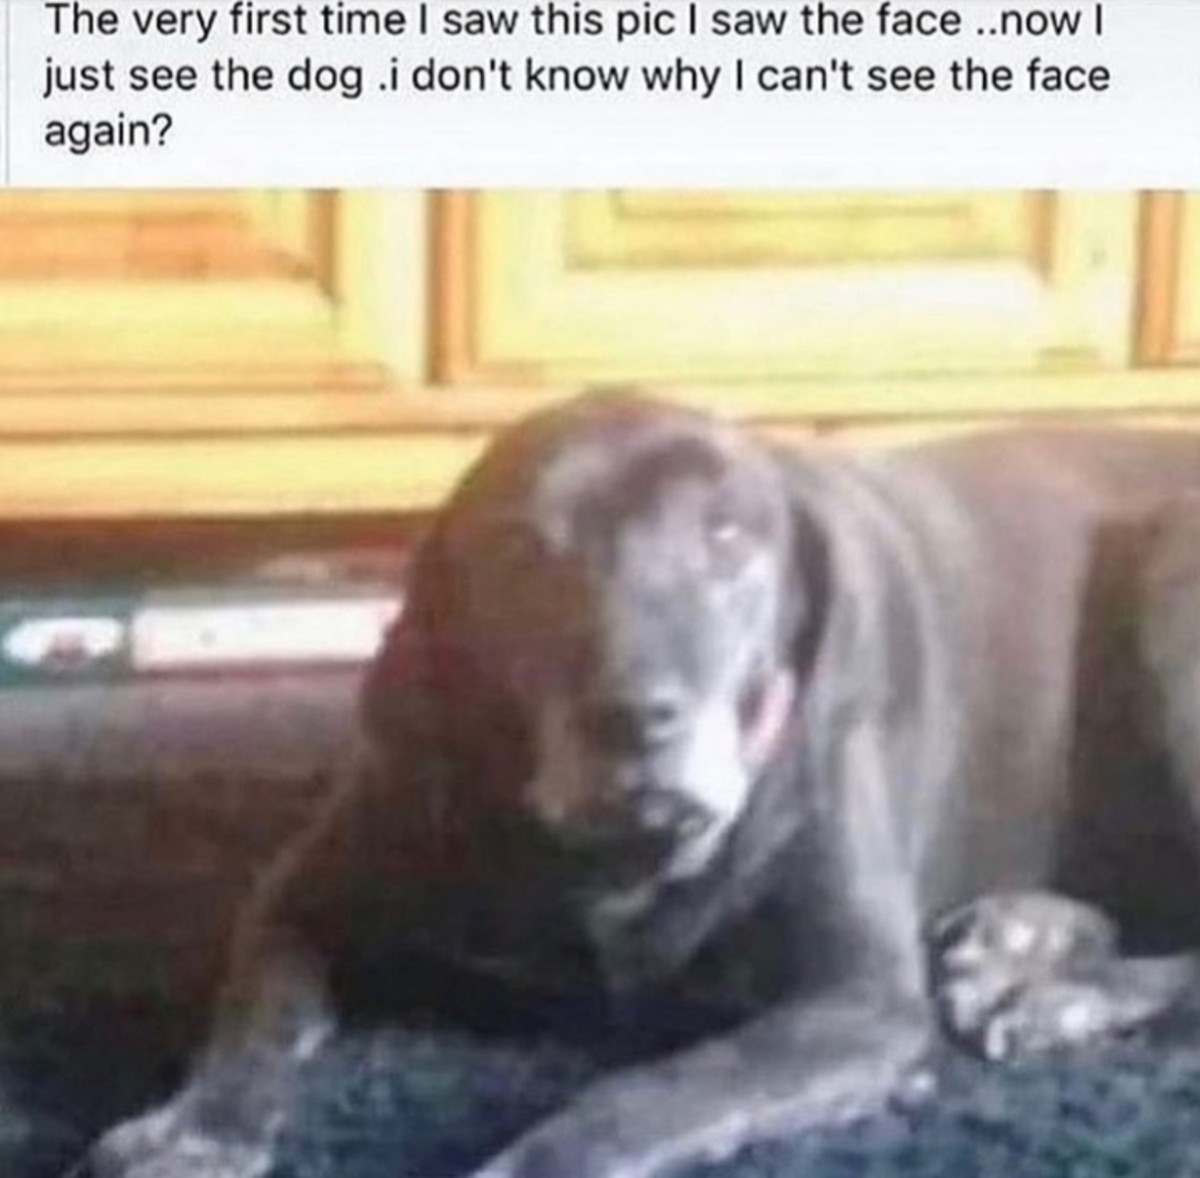 Esoteric surgery. Same thing happened to me and I cannot force myself to see the face again, no matter what... What face? There is only dog Comment edited at .